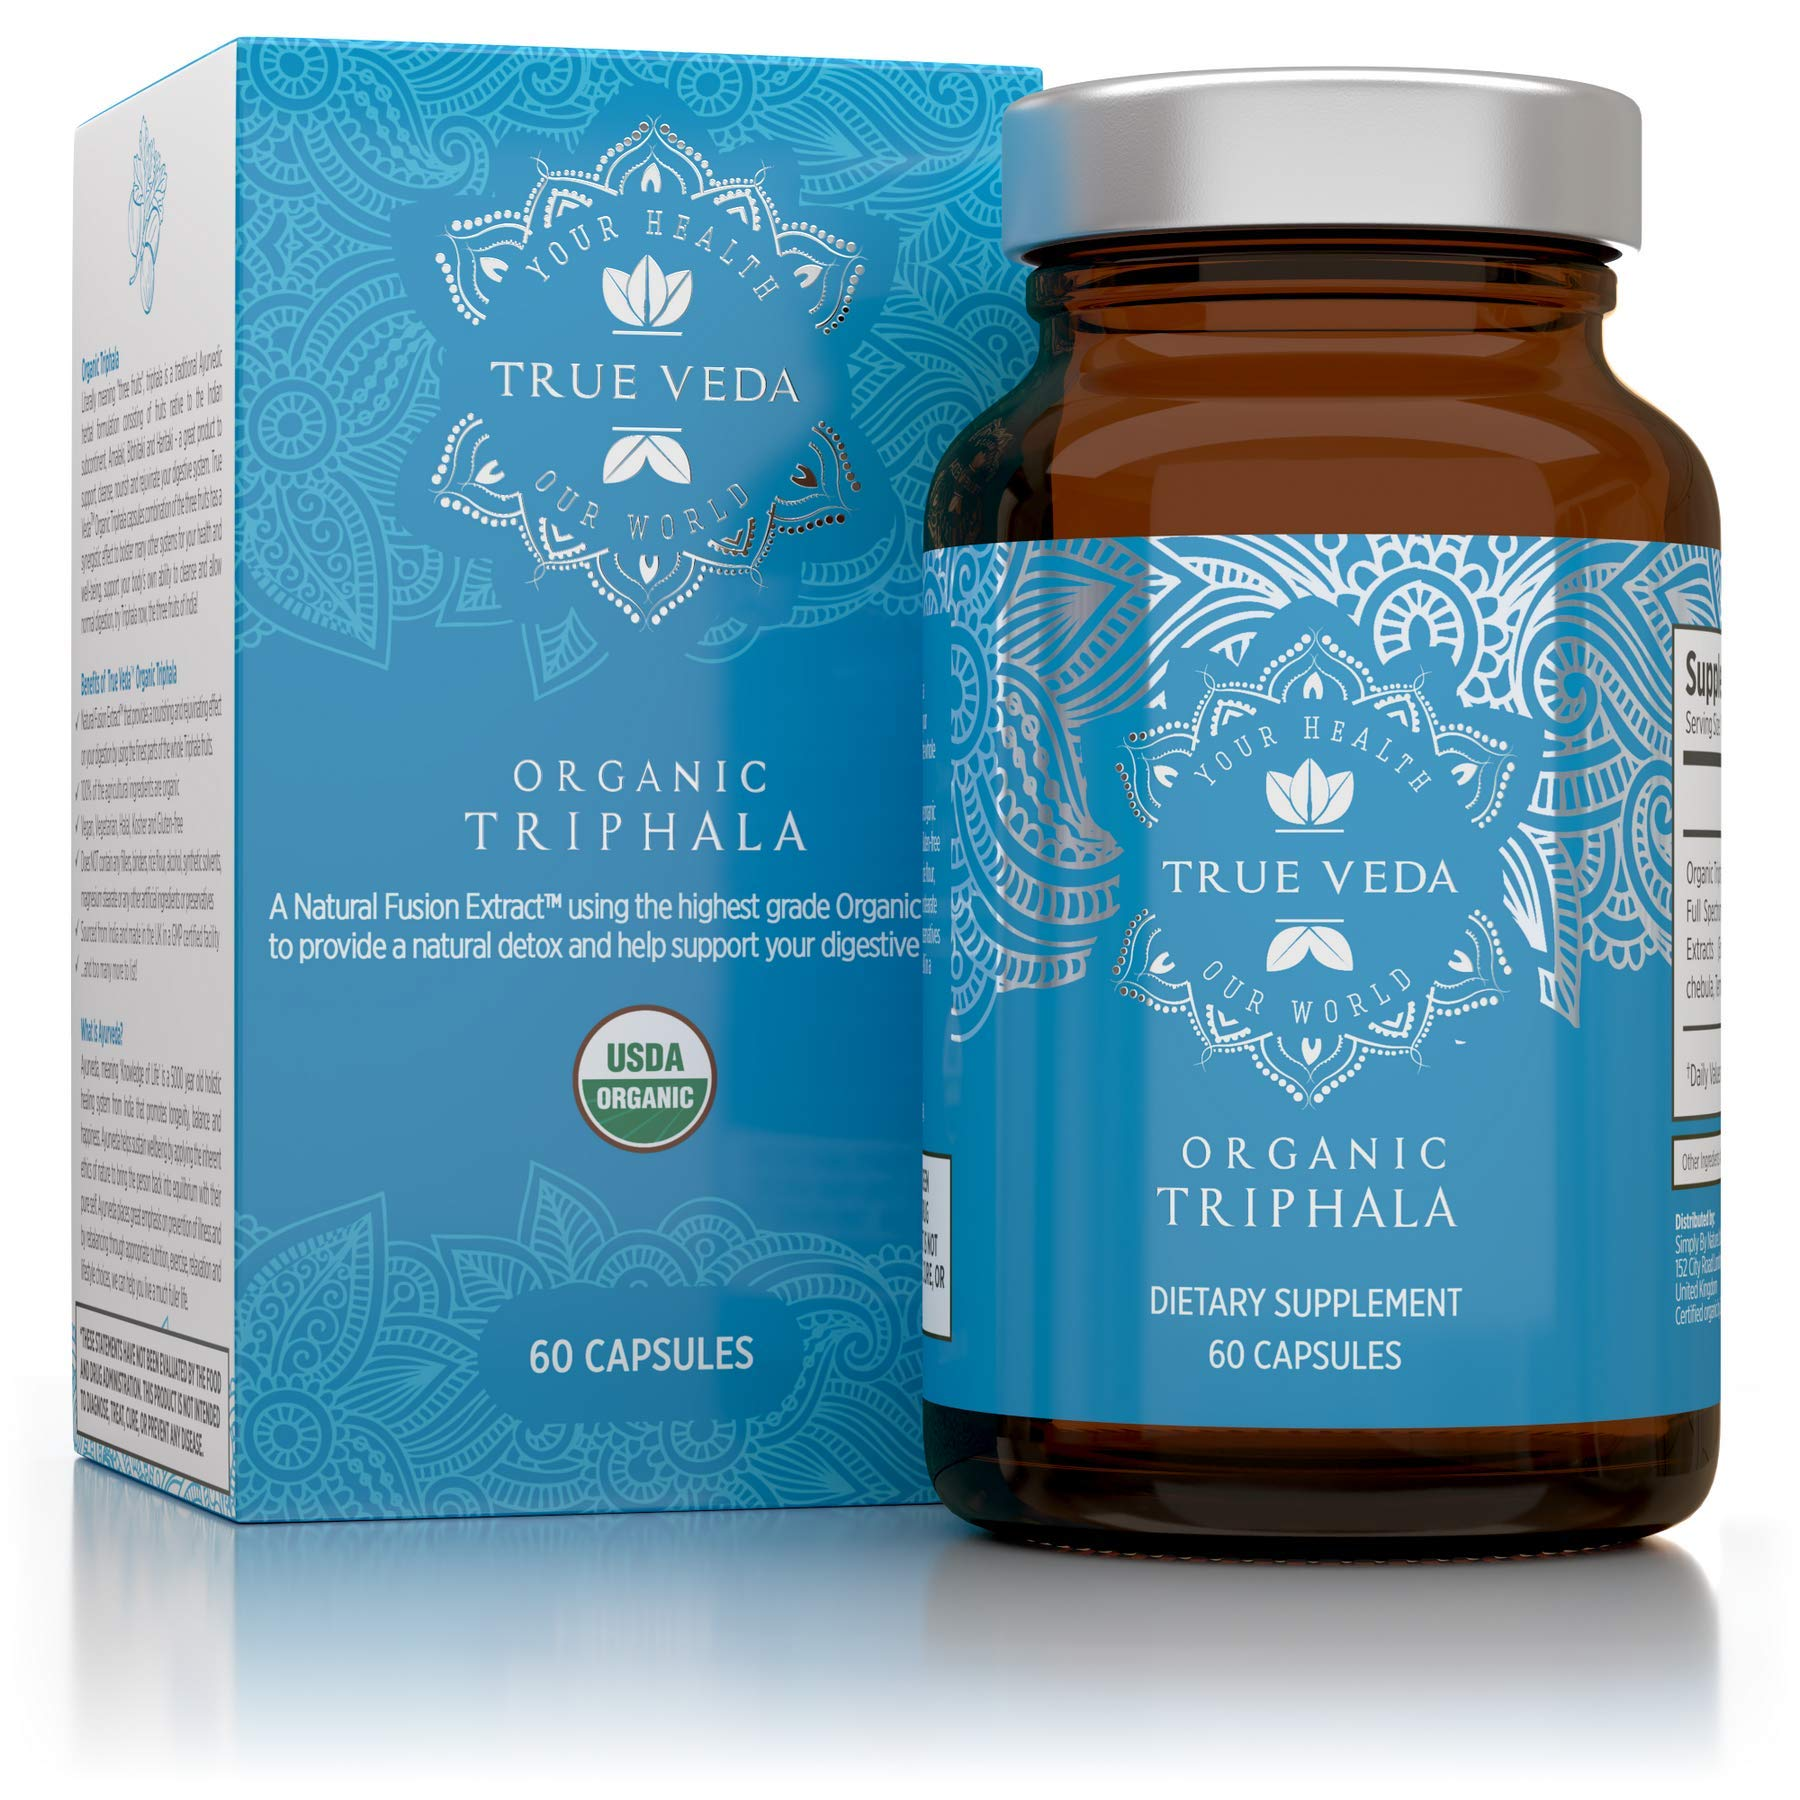 Organic Triphala Veggie Capsules – USDA Organic Certified | 100% Natural Herbal Supplement | Supports Healthy Digestion | Natural Antioxidant | Ayurveda | 60 Easy Swallow Vegetarian Pills